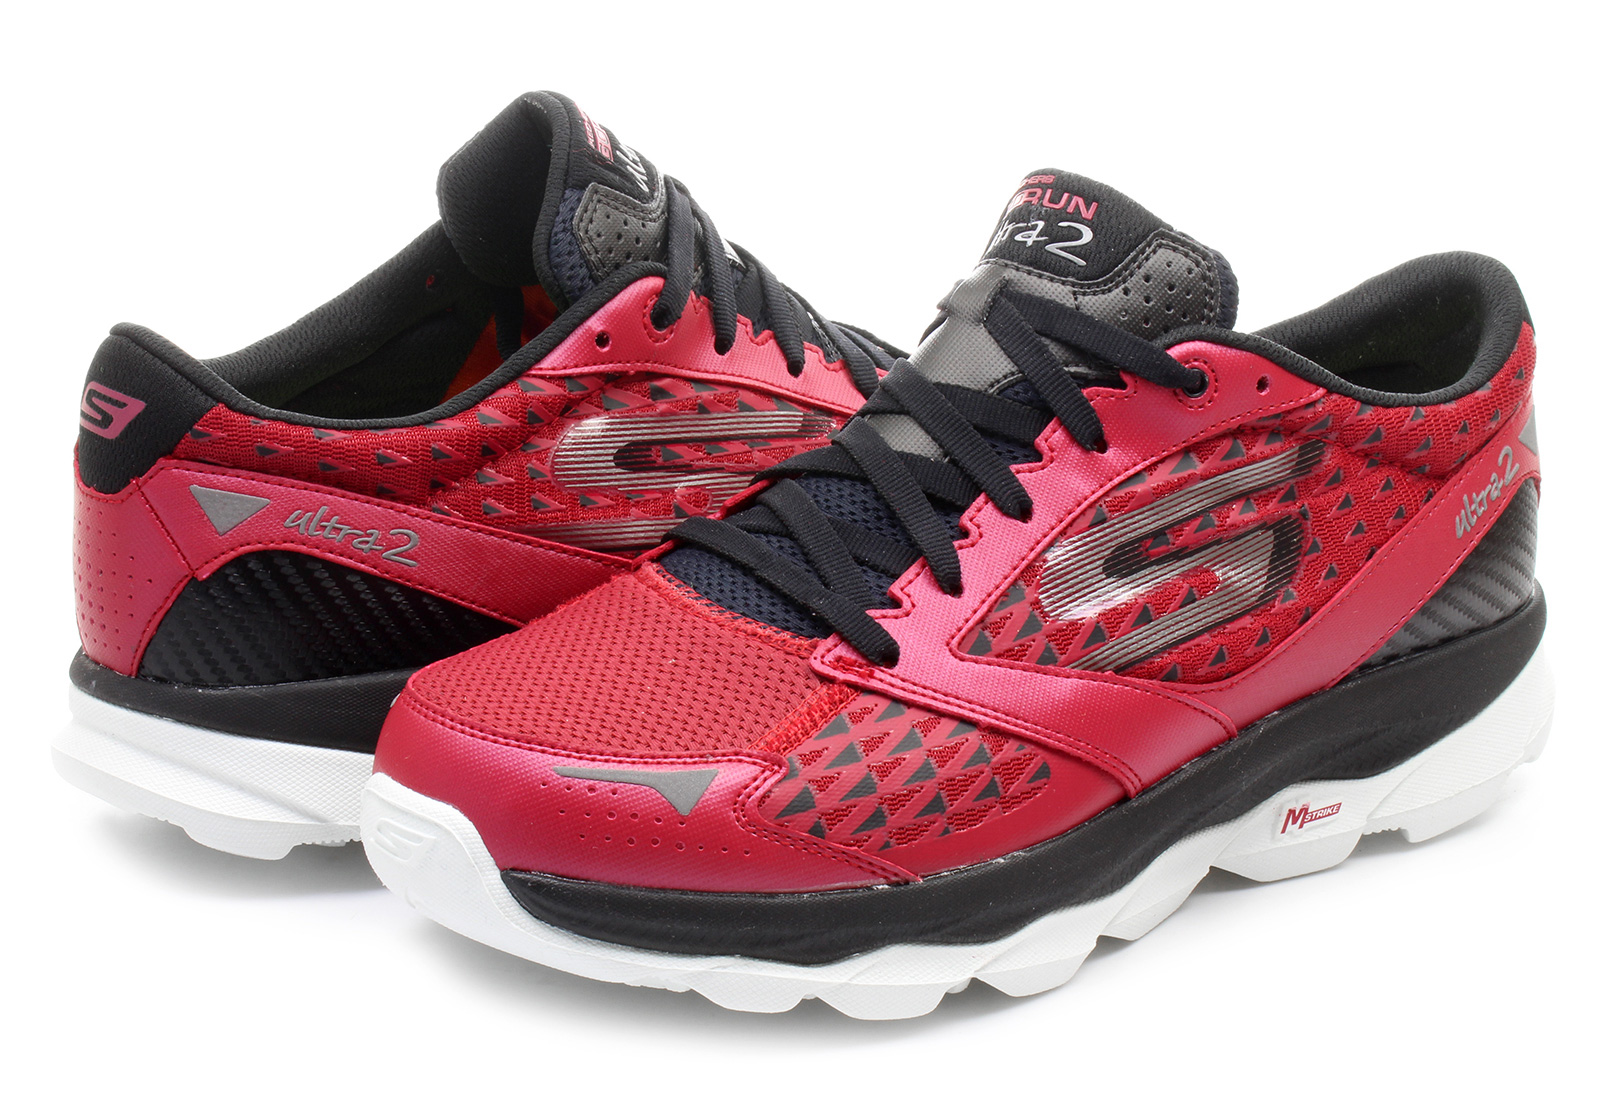 Skechers Shoes - Go Run Ultra 2 - 53918-RDBK - Online Shop For Sneakers Shoes And Boots